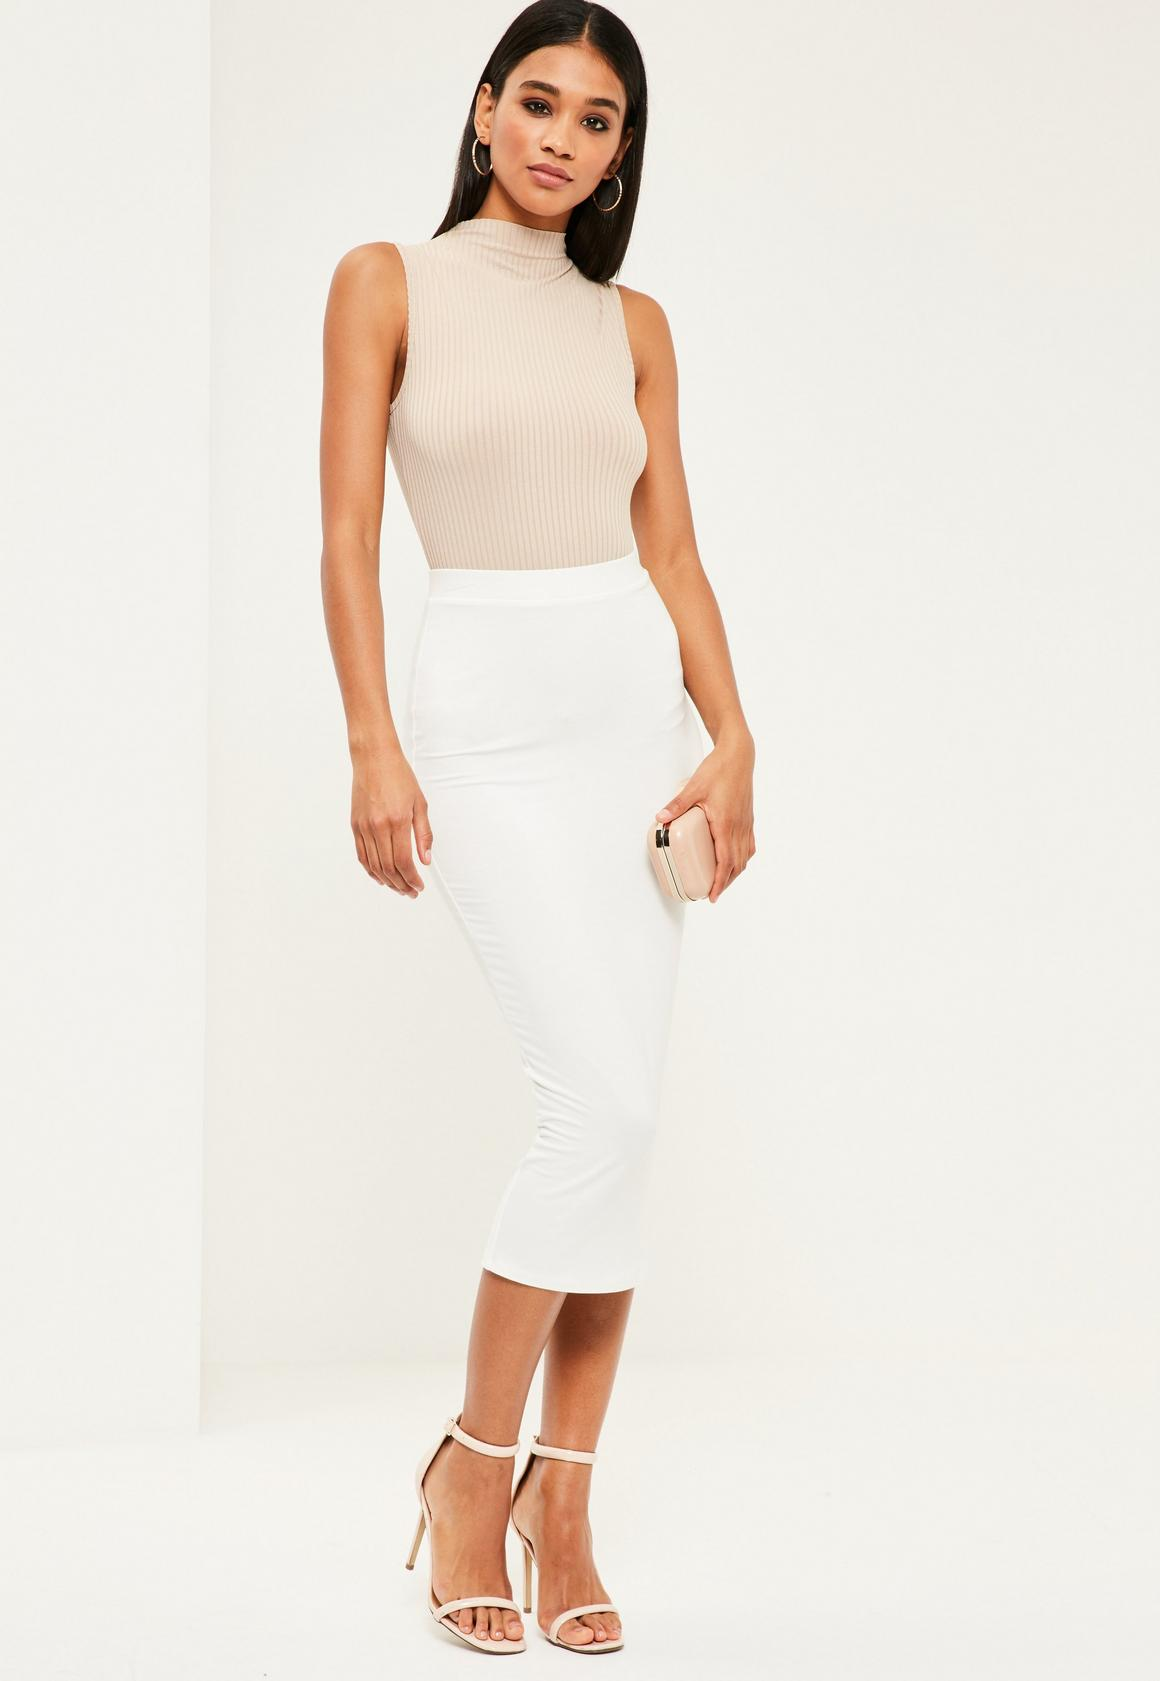 Midi Skirts | Women's Calf Length Skirts - Missguided